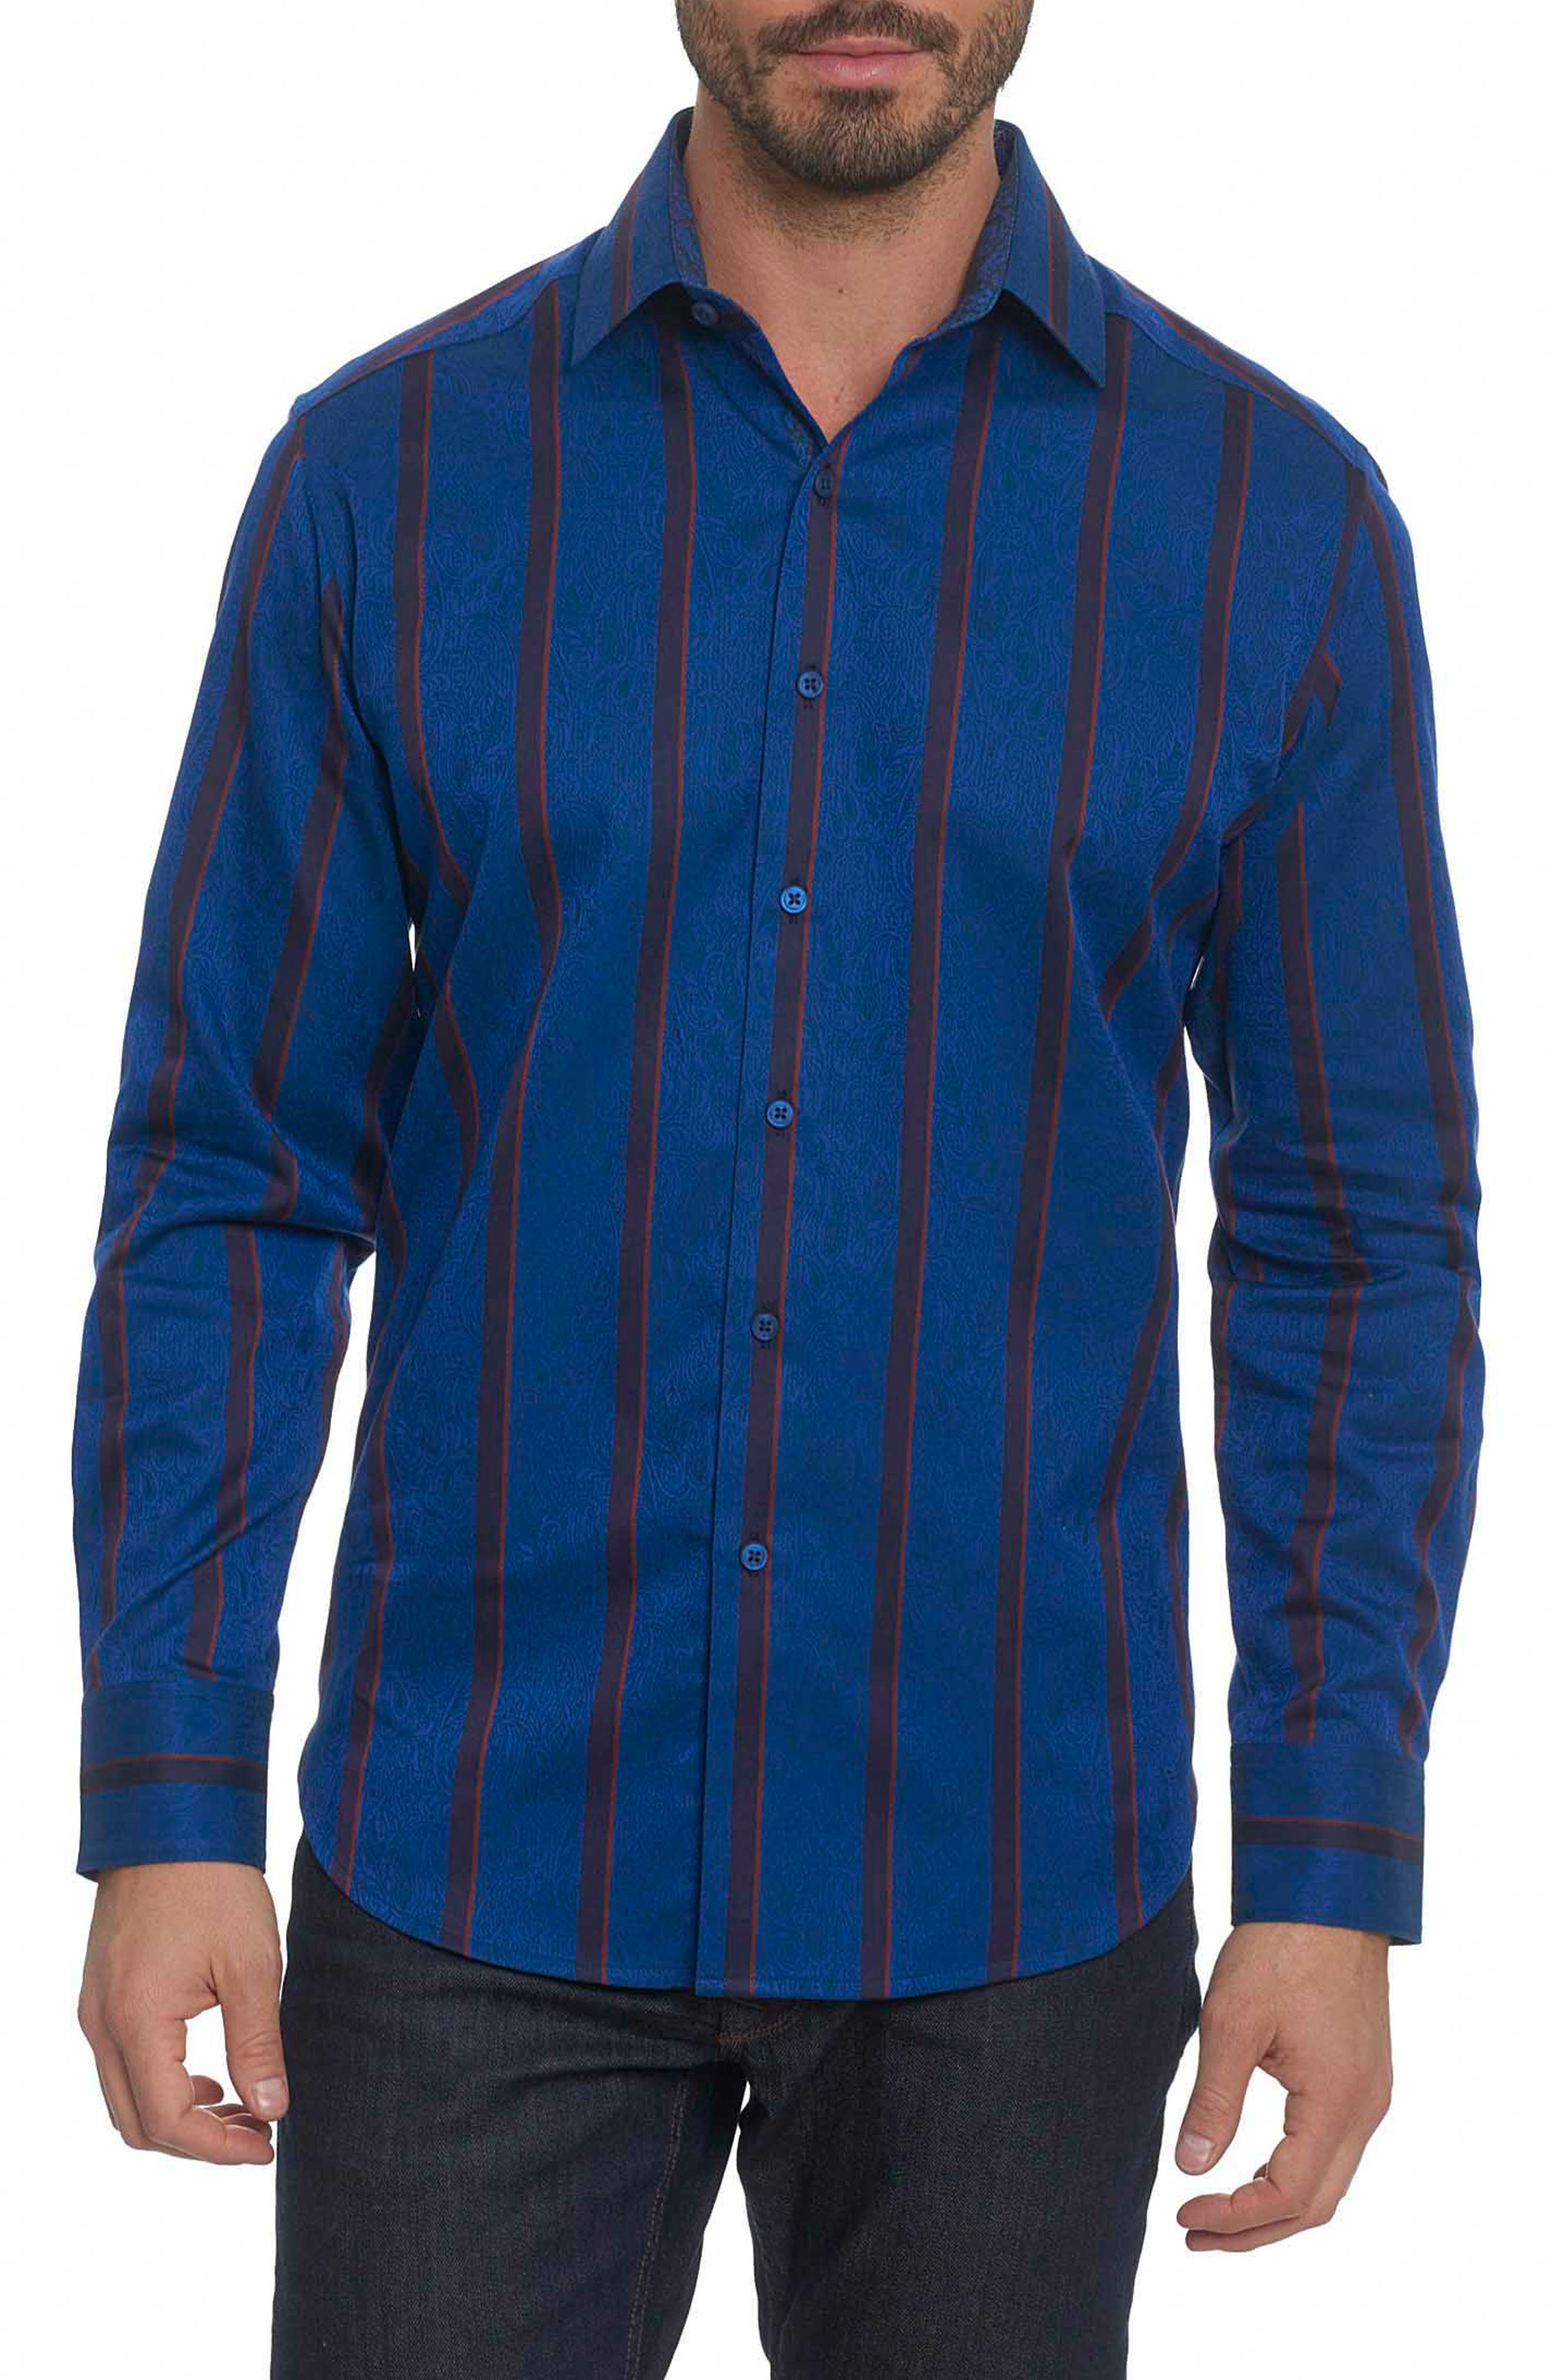 Granby Classic Fit Stripe Paisley Sport Shirt,                         Main,                         color, 432